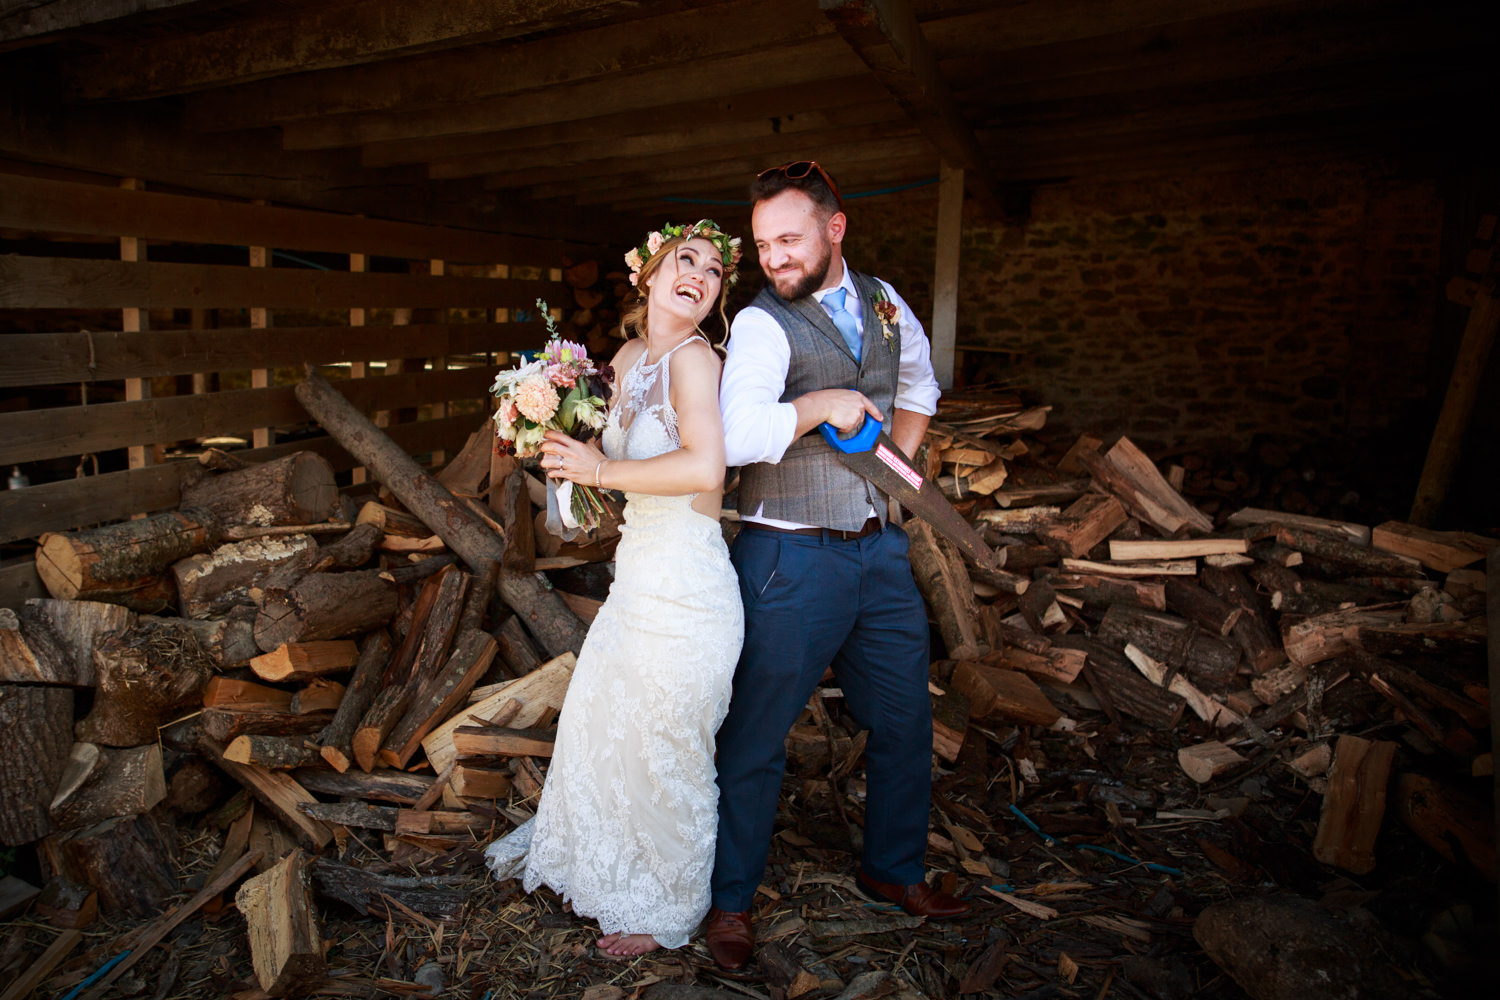 Windout Barn Farm Wedding Photographs 038_.jpg